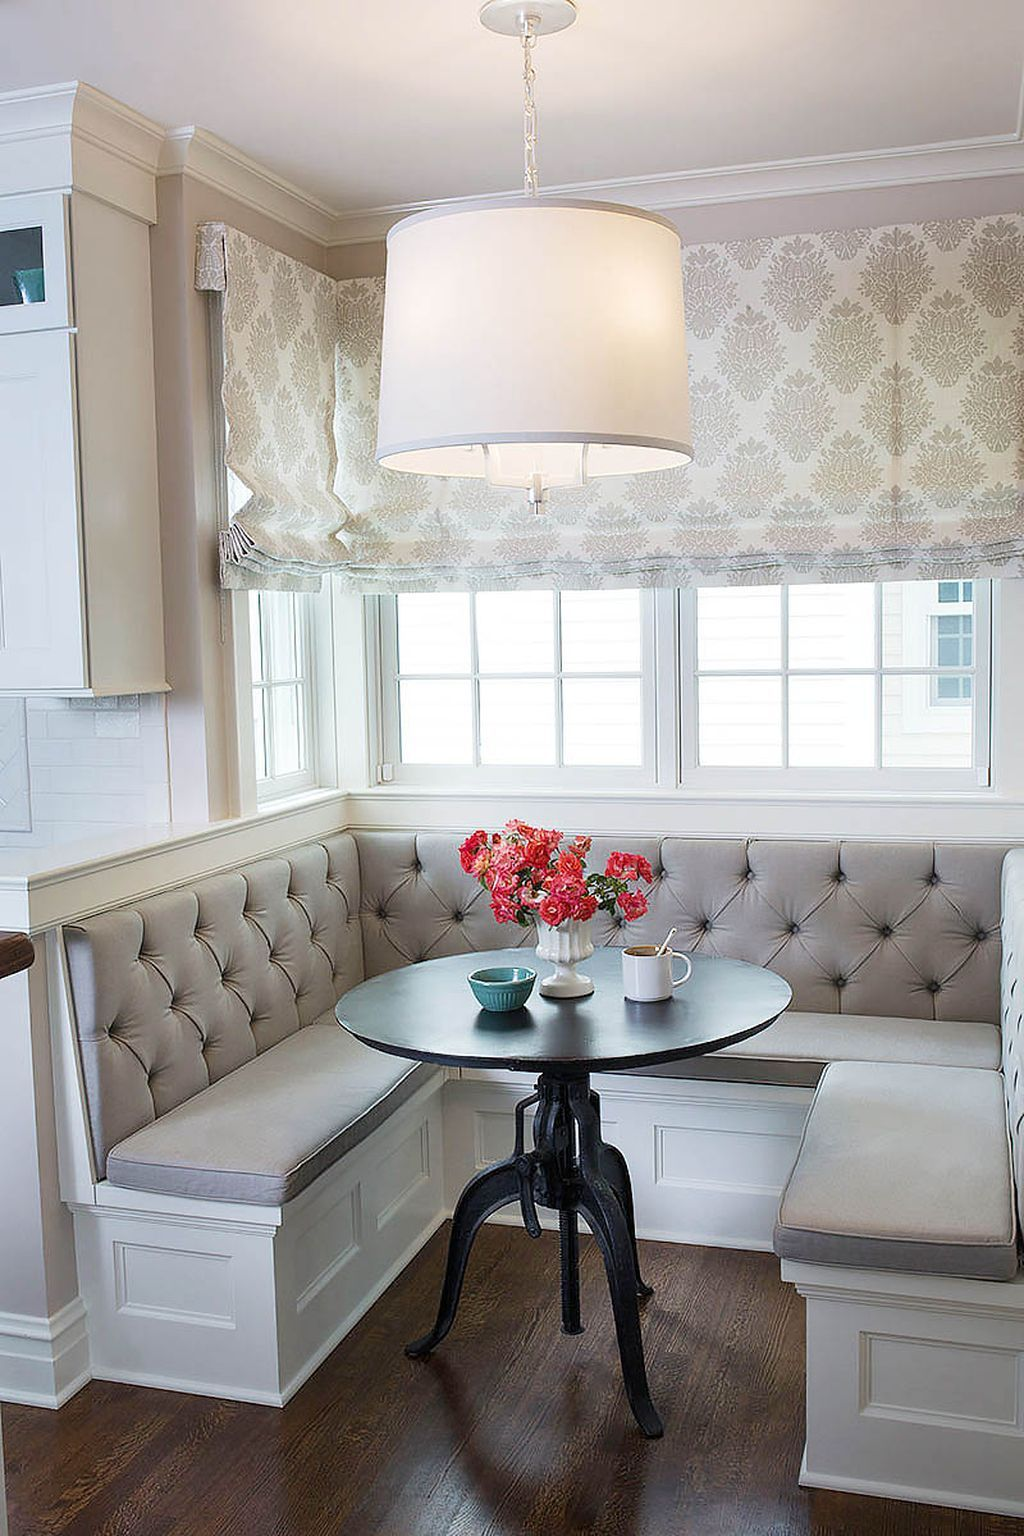 80 Built In Kitchen Banquette Ideas 42 With Images Dining